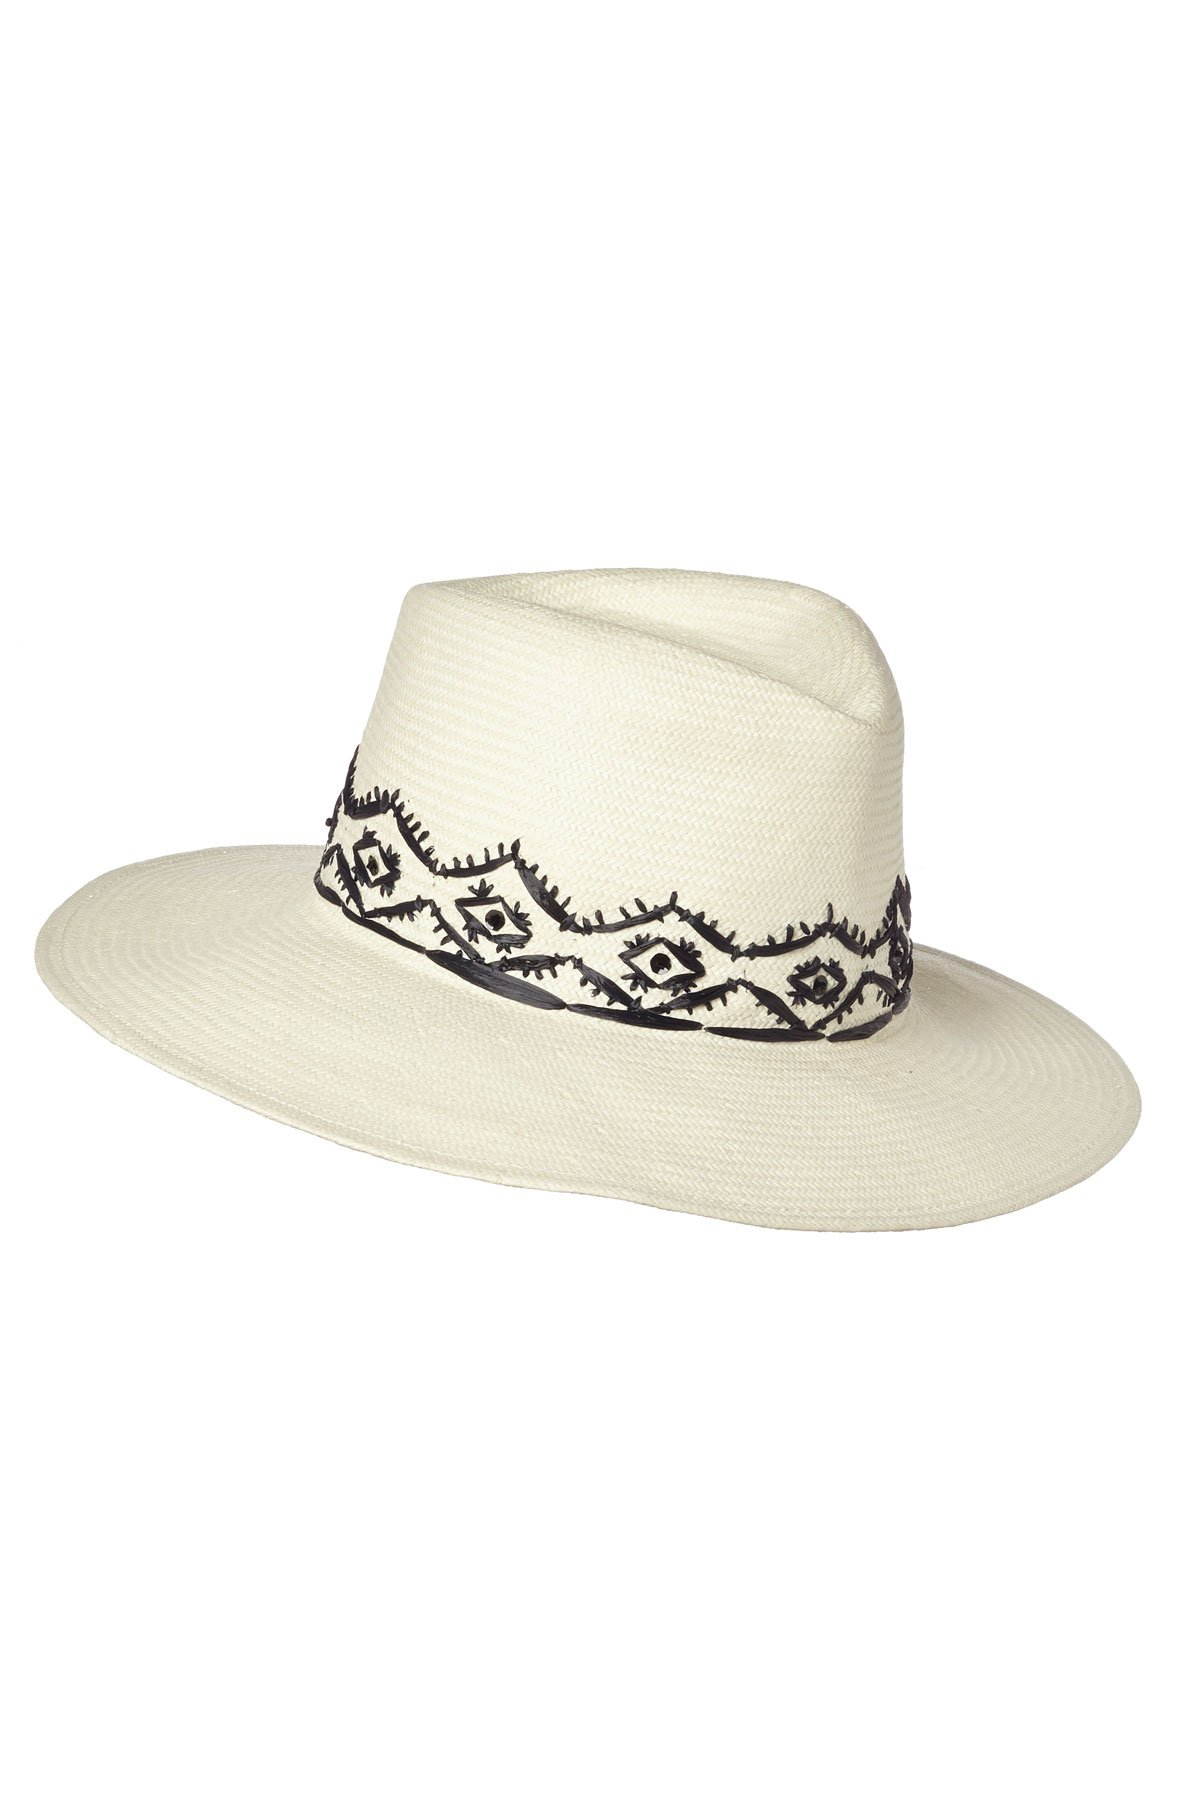 Gottex Women's Tulum Panama Fedora with Hand Embroidered Trim, Ivory, One Size by Gottex